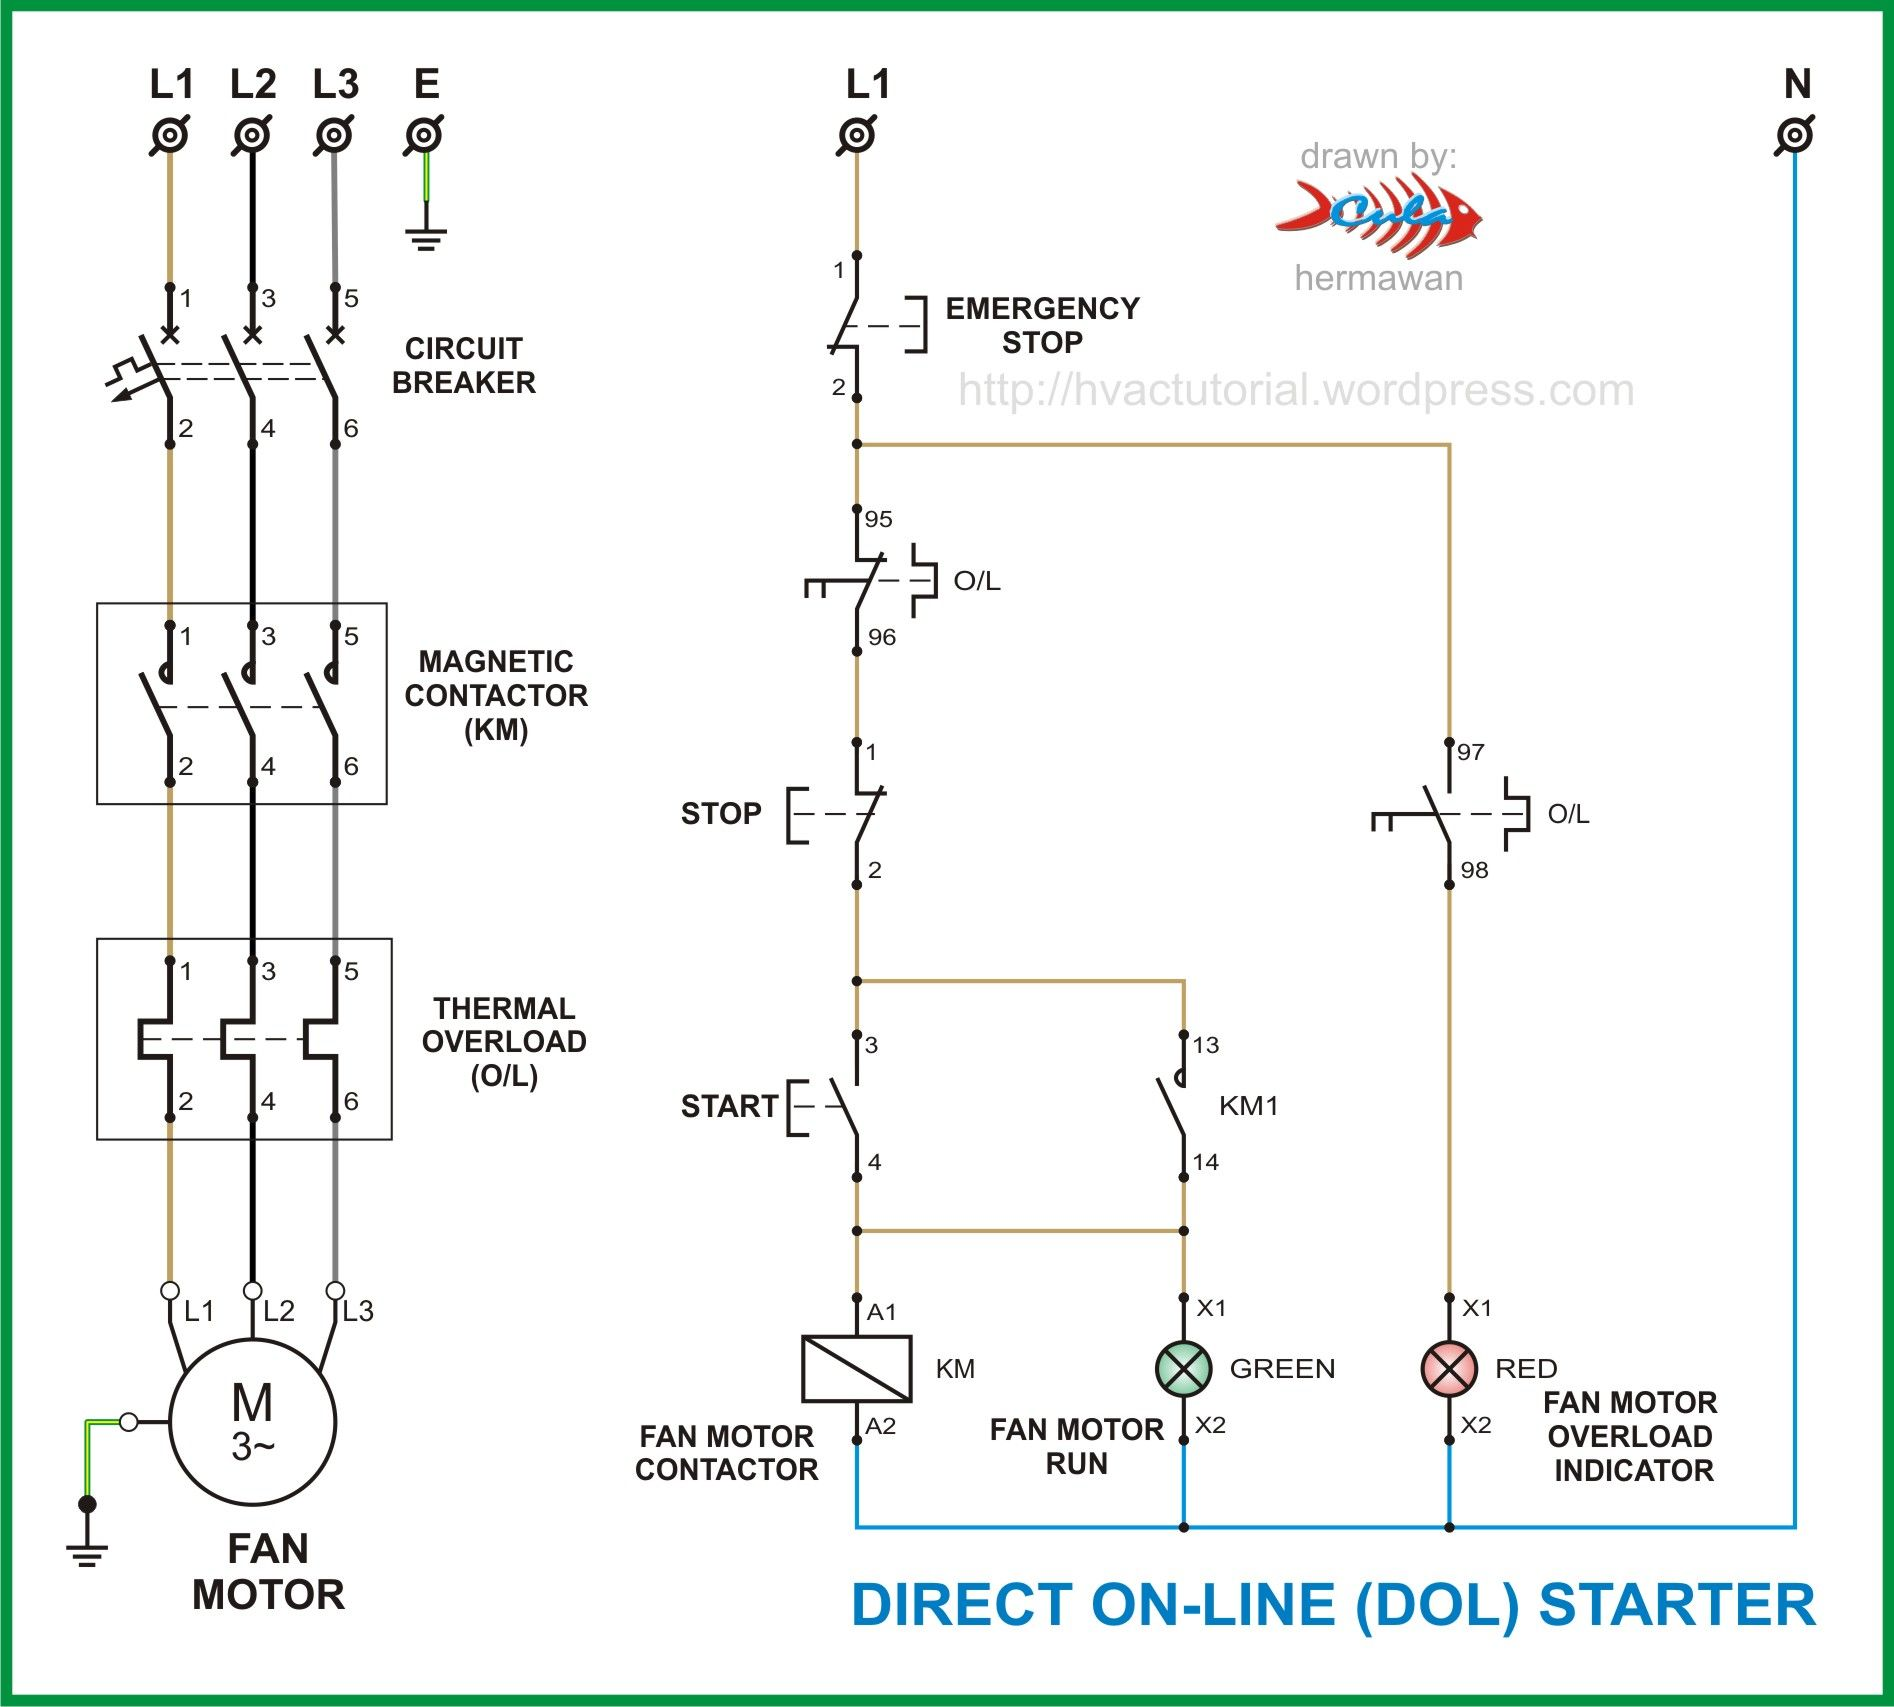 Water Relay Diagram - volvo work shop manual 520 733 by ... on